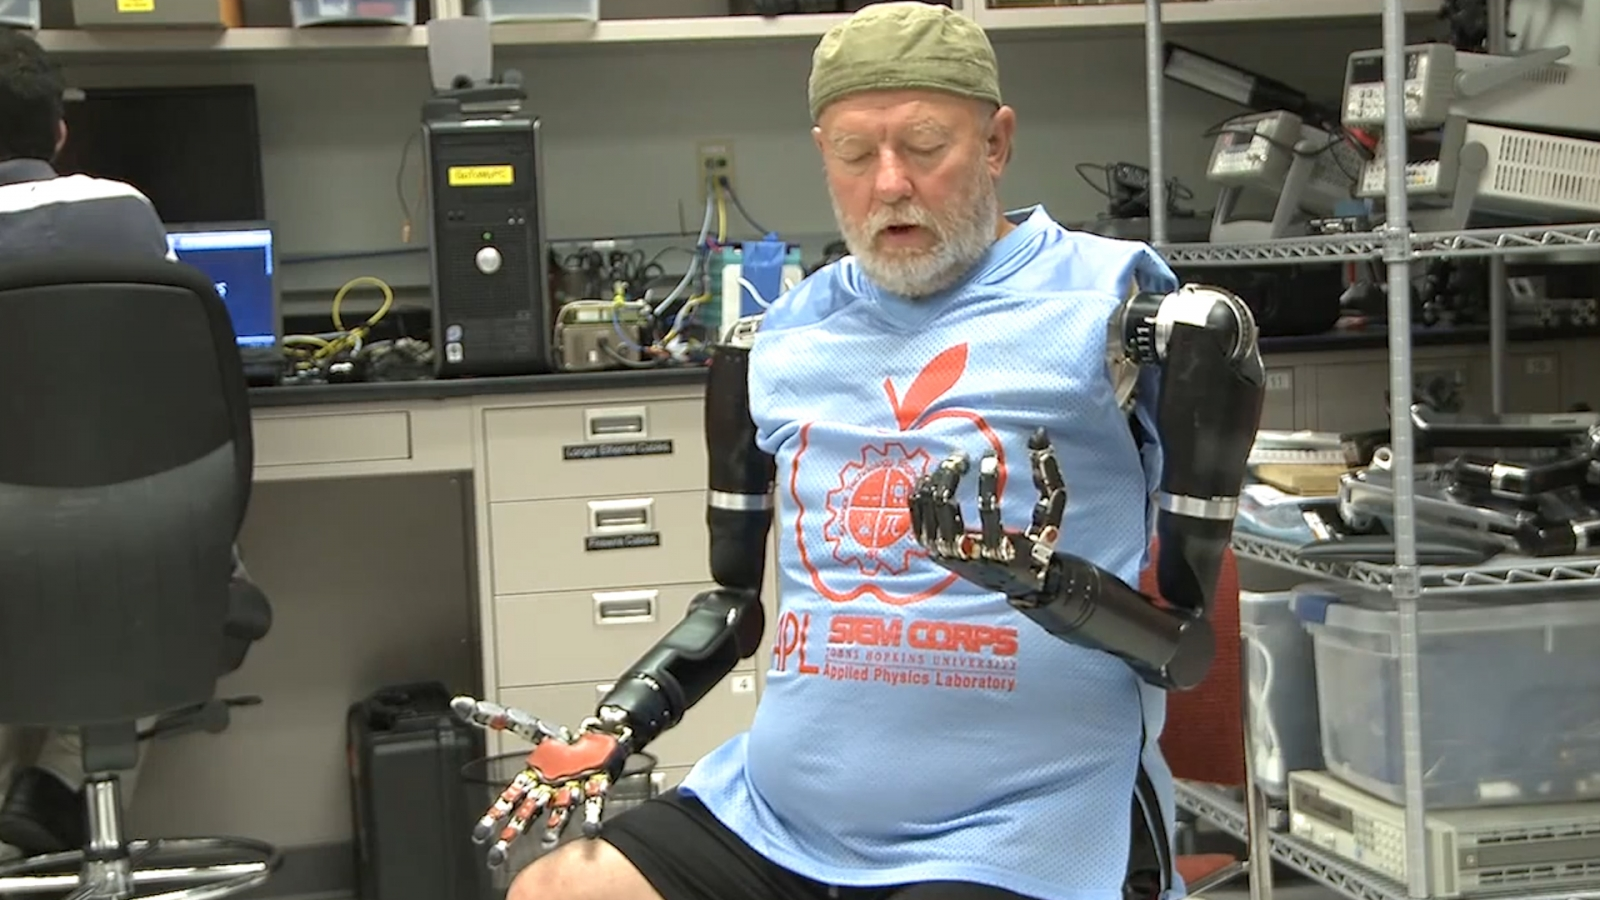 Double amputee controls two prosthetic arms with just his mind